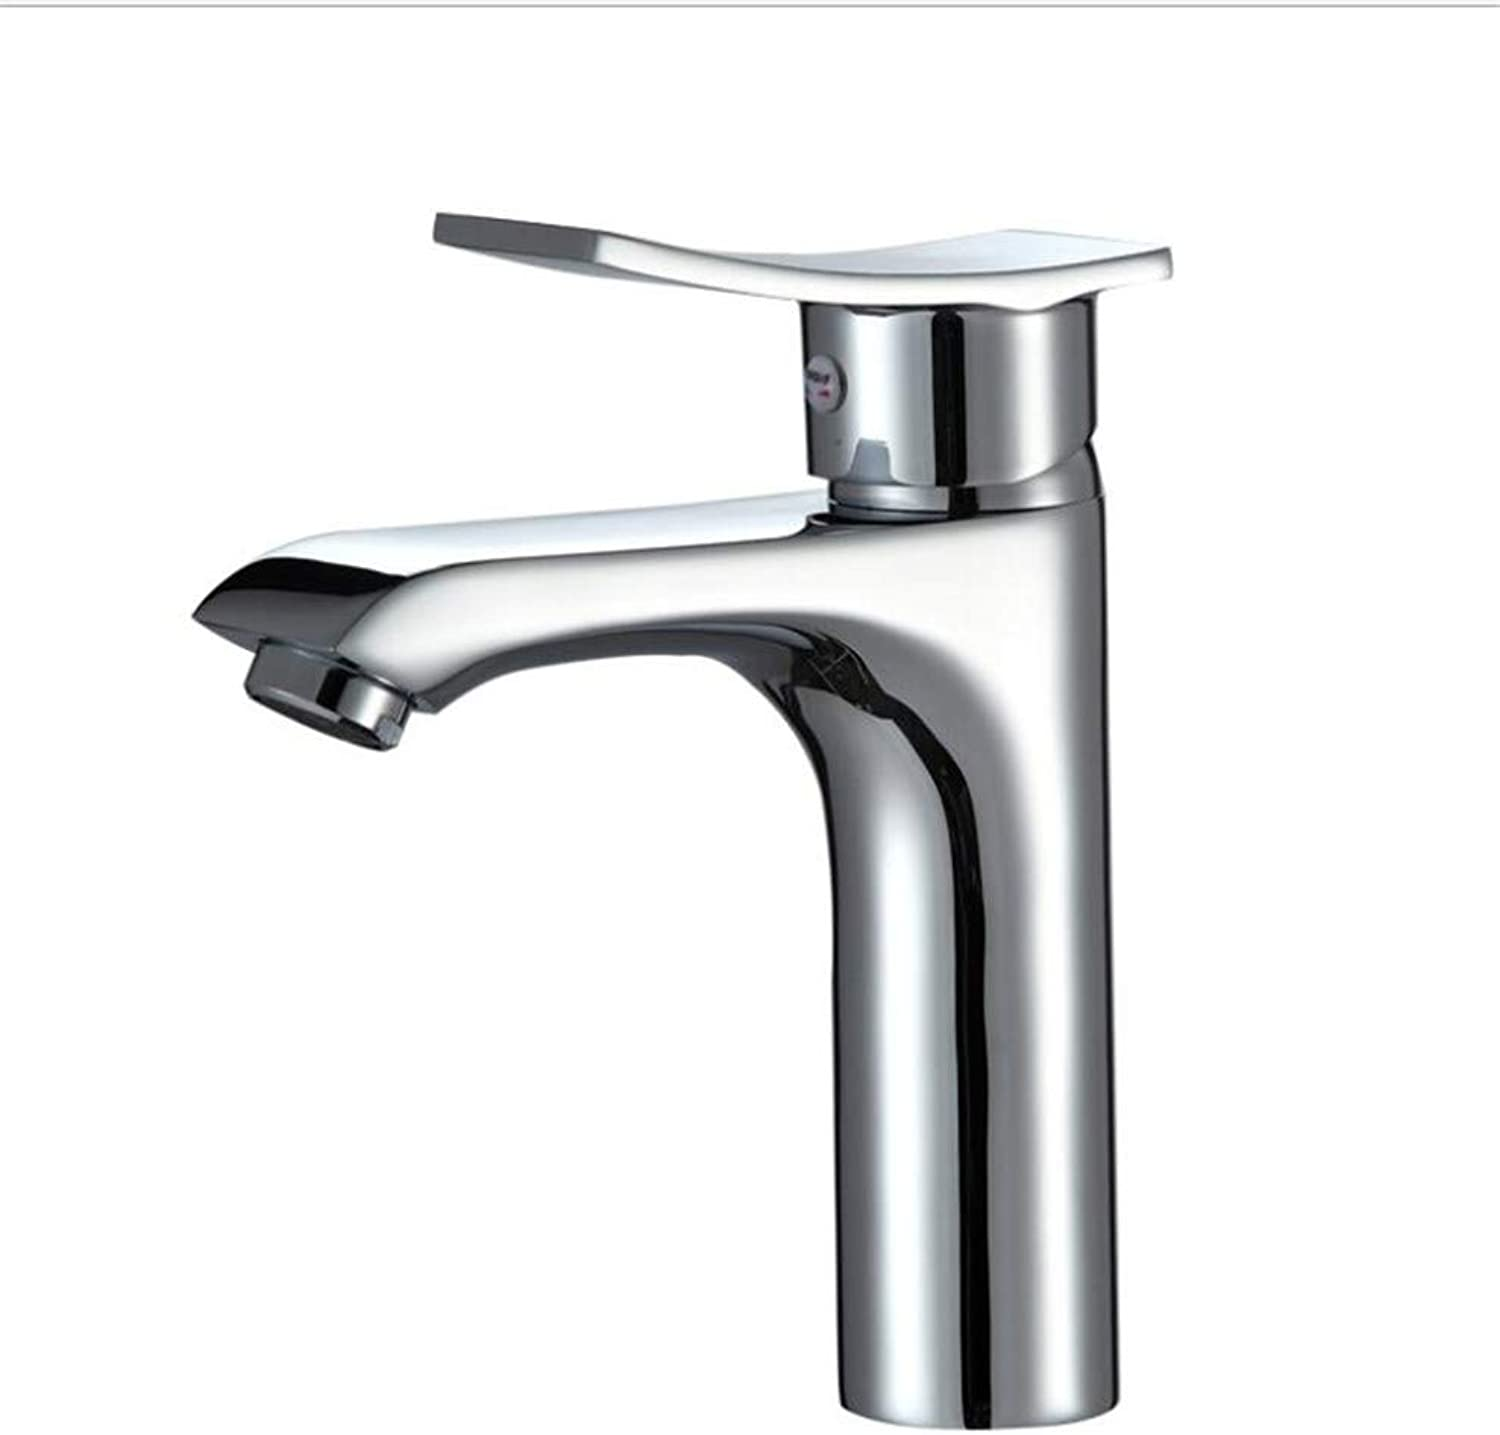 Bathroom Sink Basin Lever Mixer Tap Copper Cold and Hot Basin Faucet Single Hole Mixed Valve Faucet